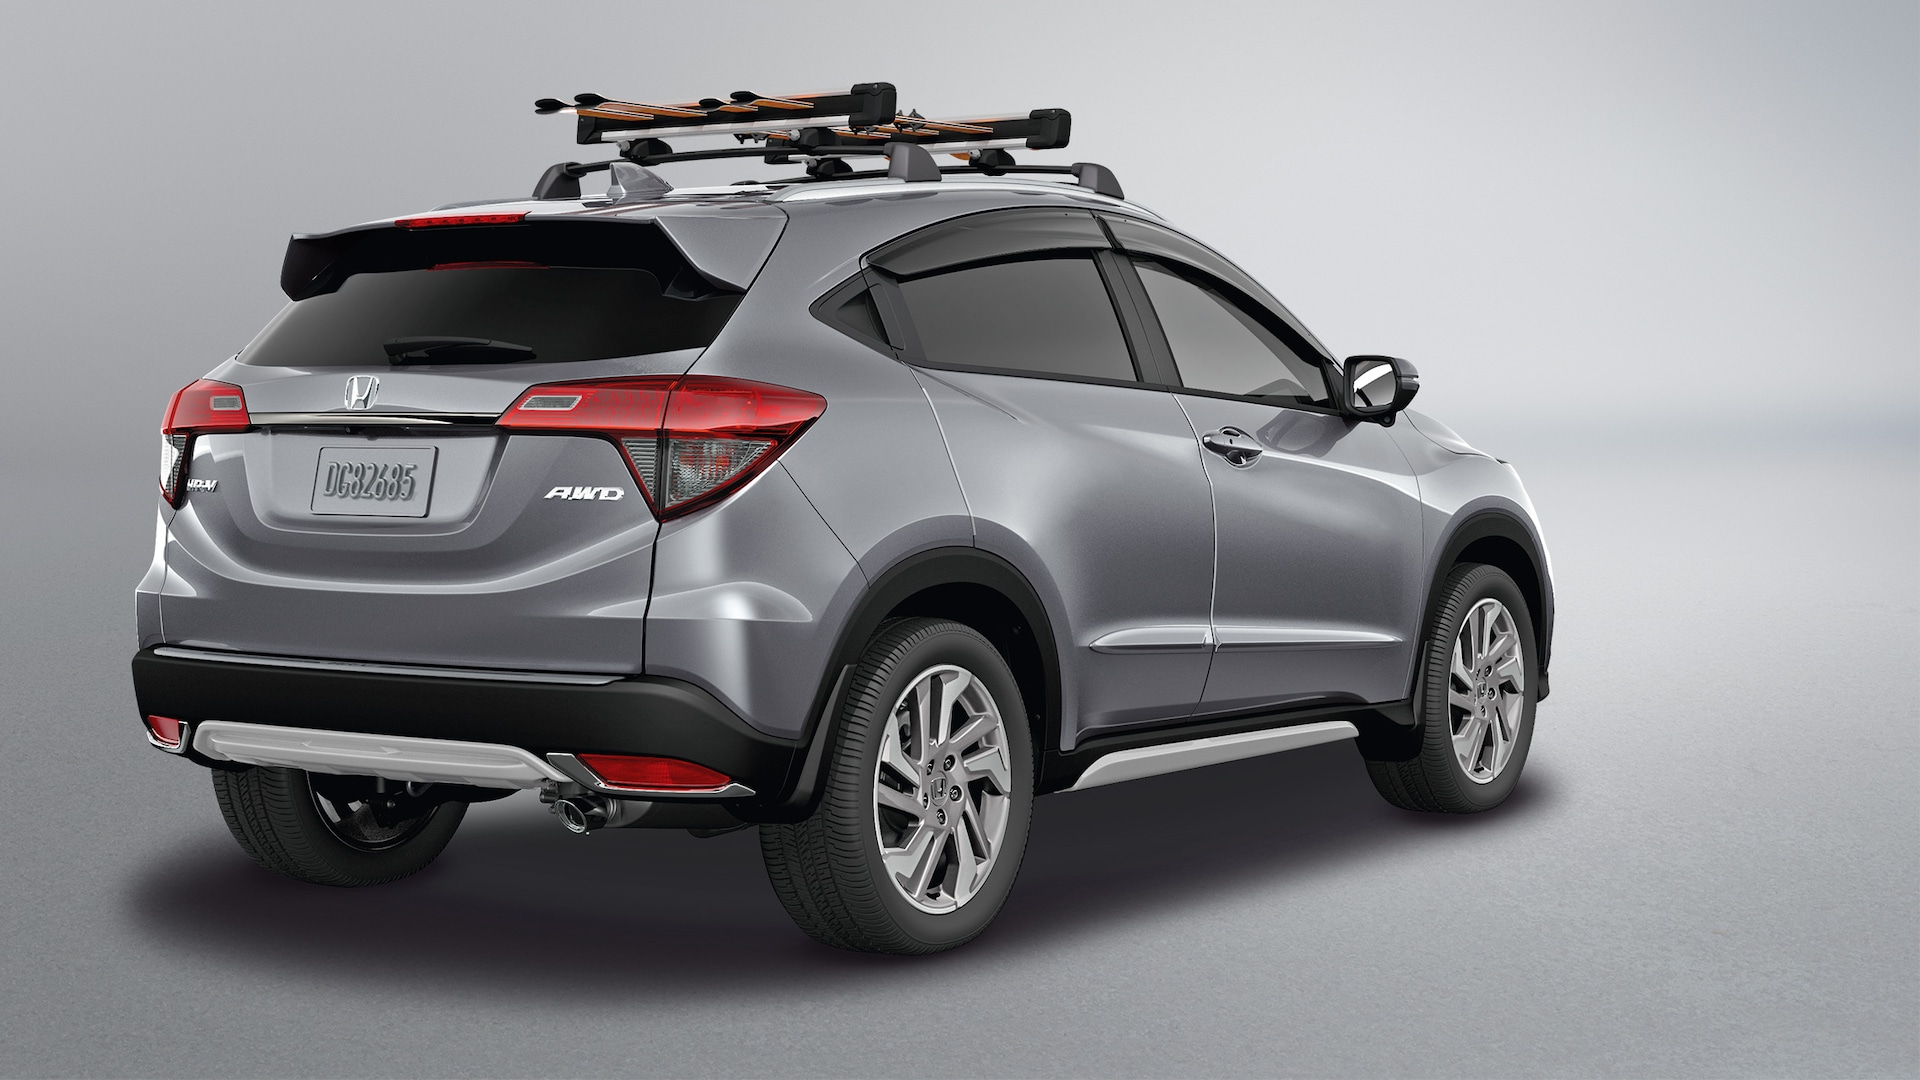 Rear passenger-side view of the 2021 Honda HR-V EX in Lunar Silver Metallic with Honda Genuine Accessories.